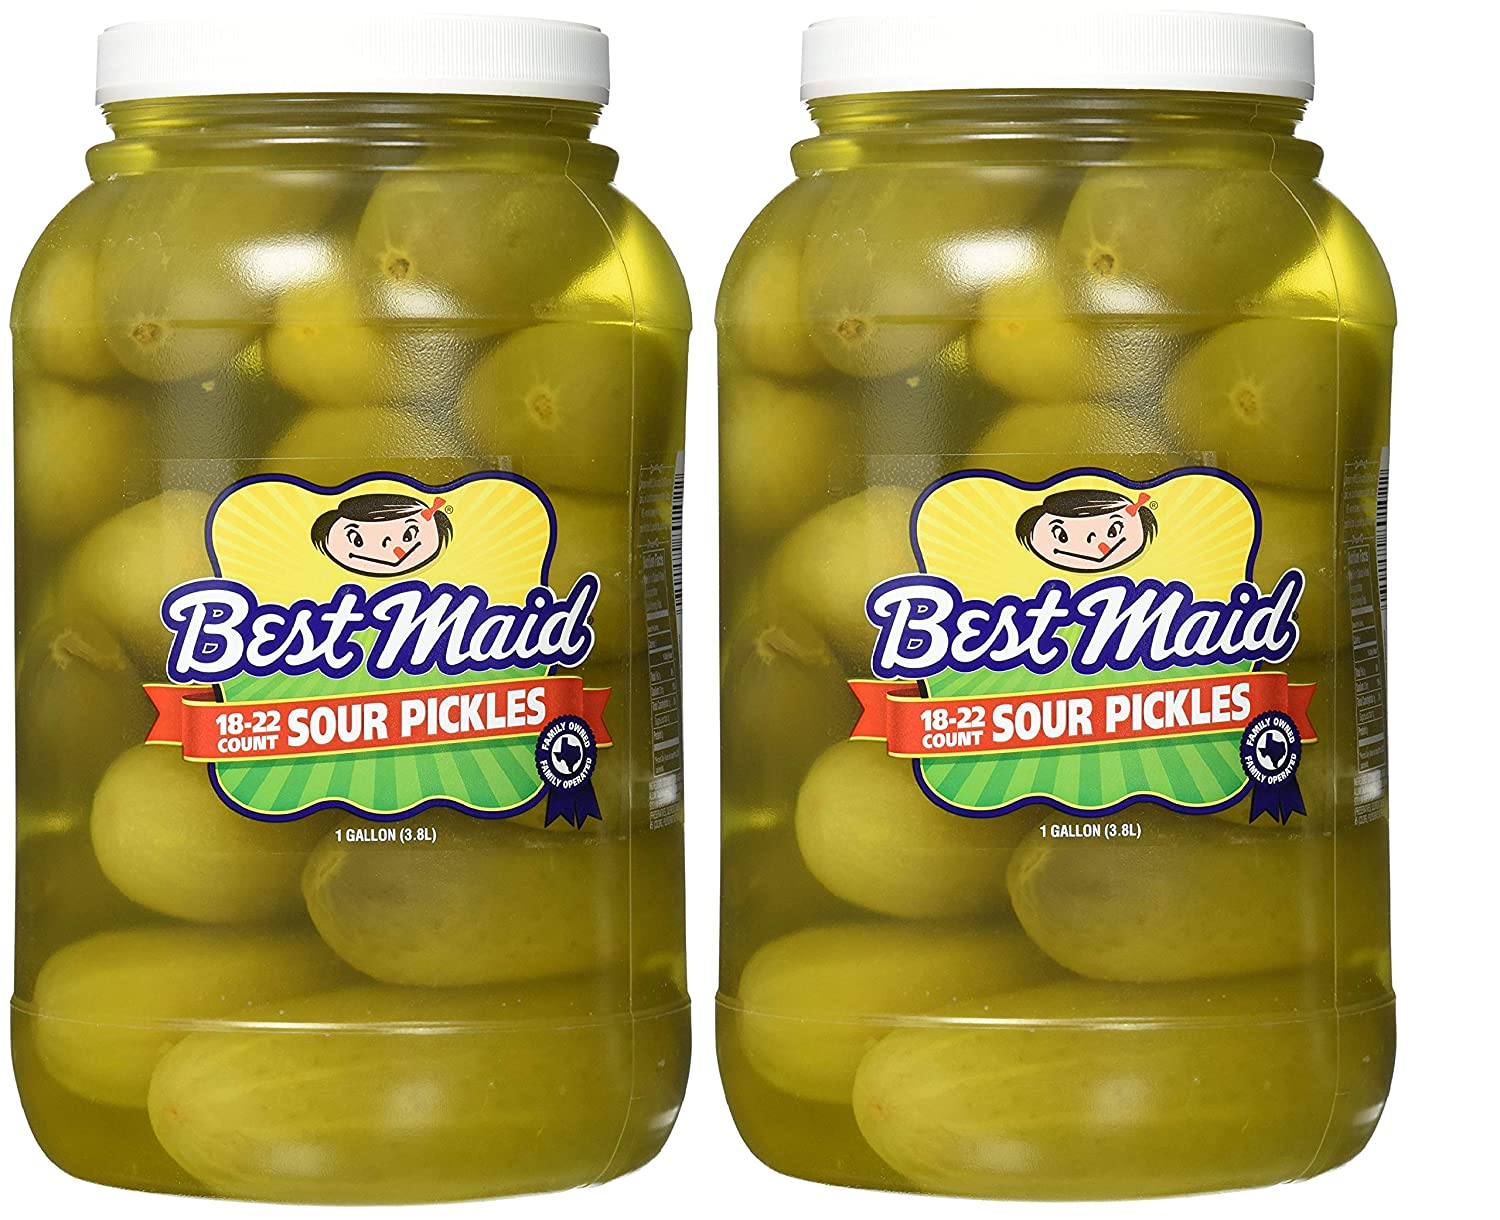 'Counting On': Why do the Duggars love pickles so much?